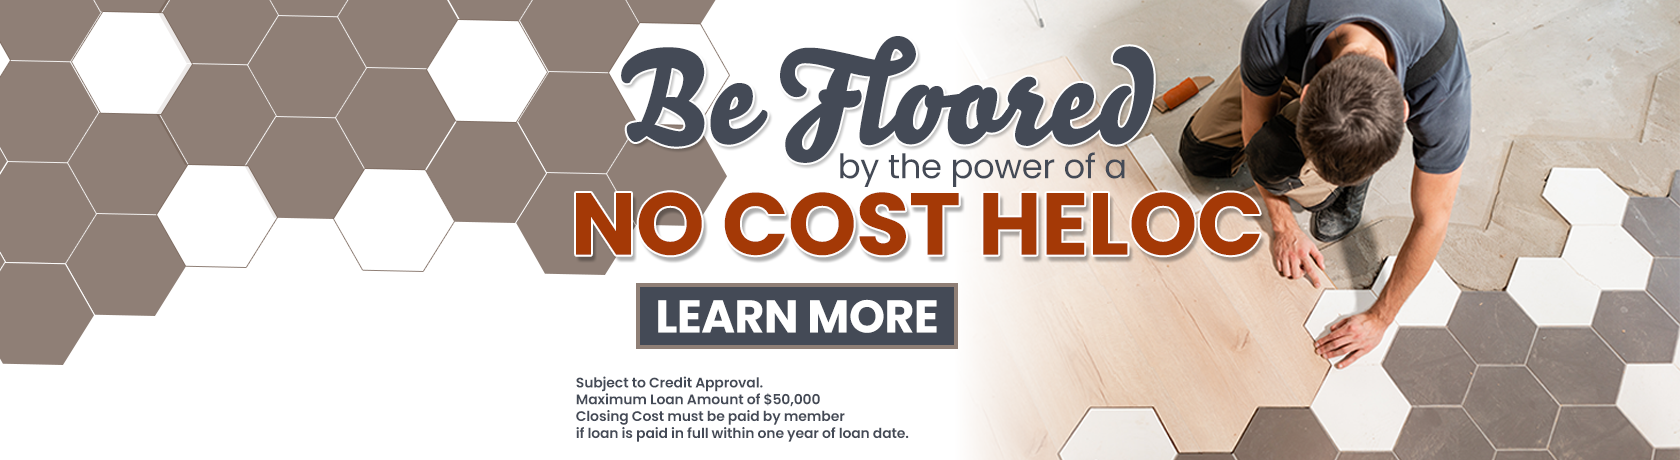 Be floored by the power of a no cost HELOC. subject to credit approval. maximum loan amount of $50,000. closing cost must be paid by member if loan is paid in full within one year of loan date.